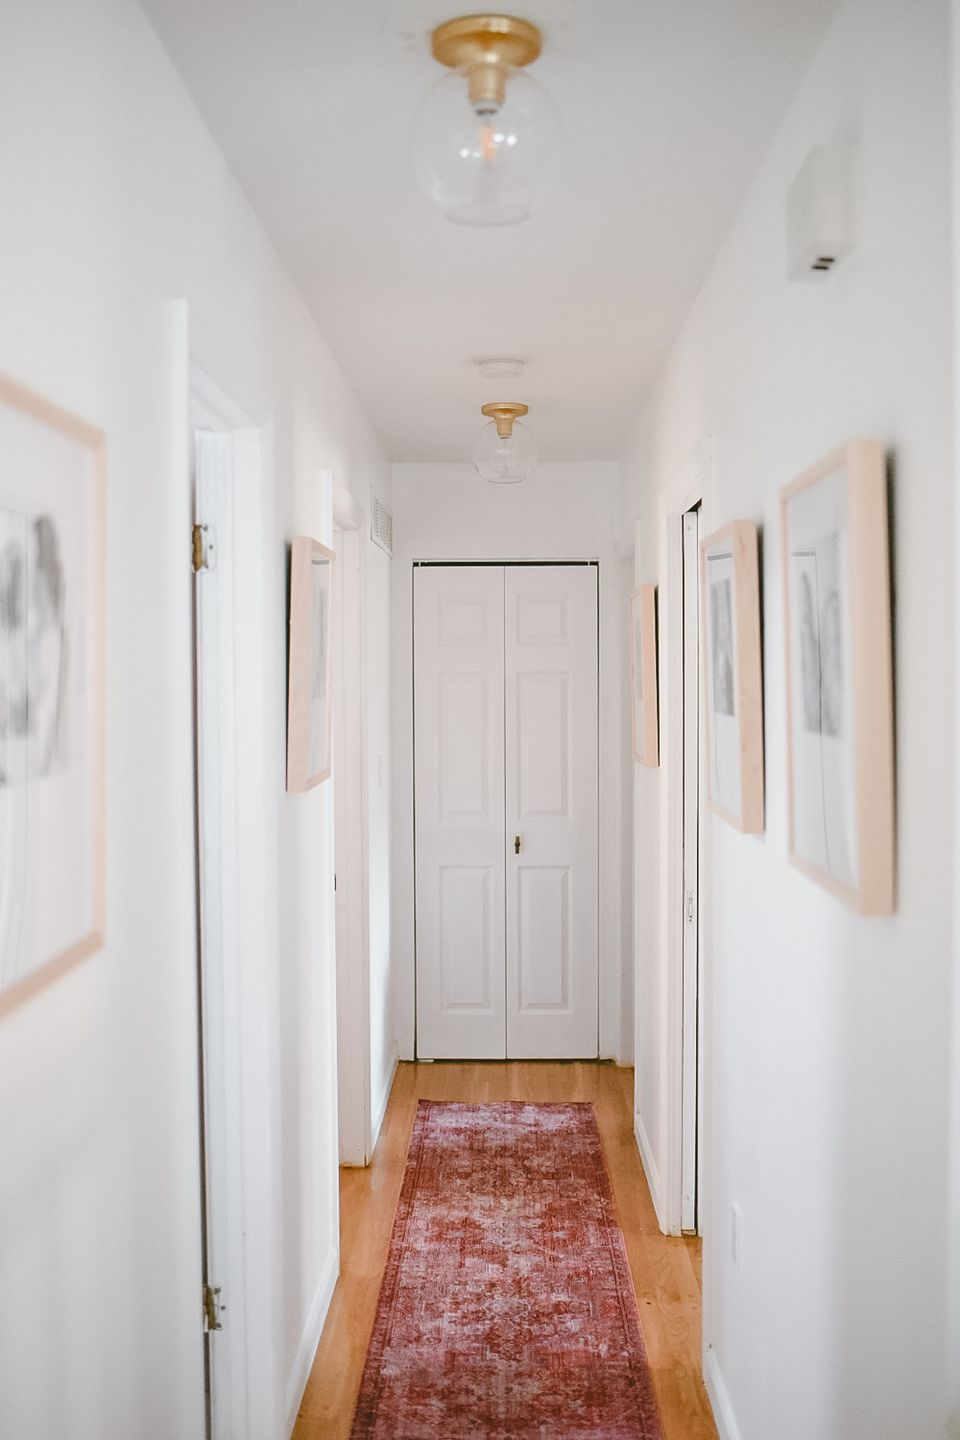 Hallway with a rug and framed pictures